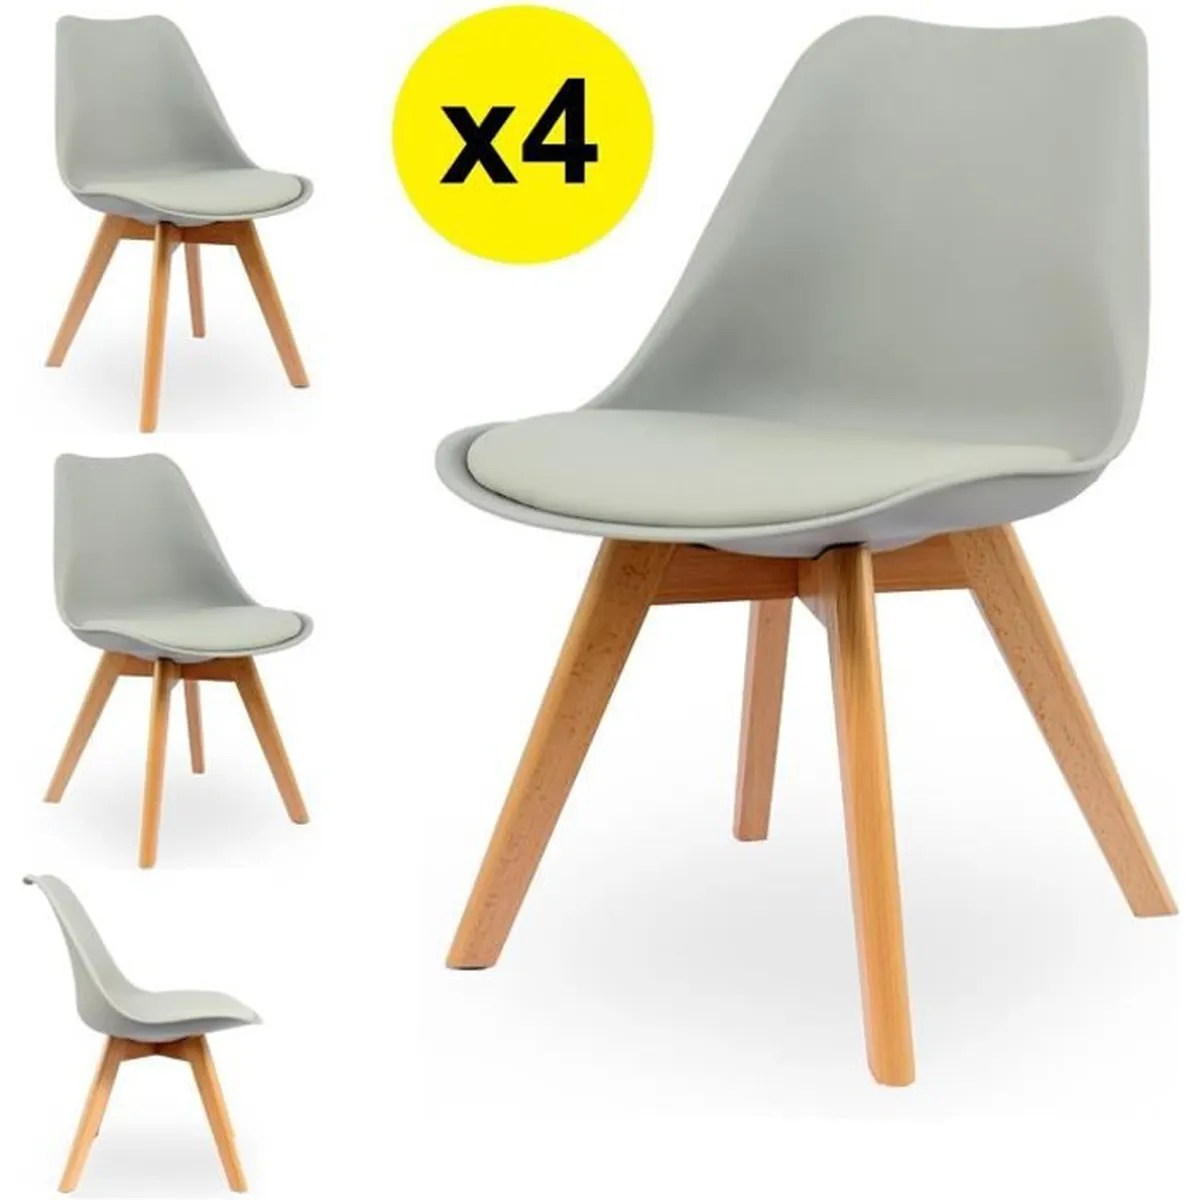 Chaises Scandinaves Couleur Chaise Scandinave Grise Achat Vente Chaise Scandinave